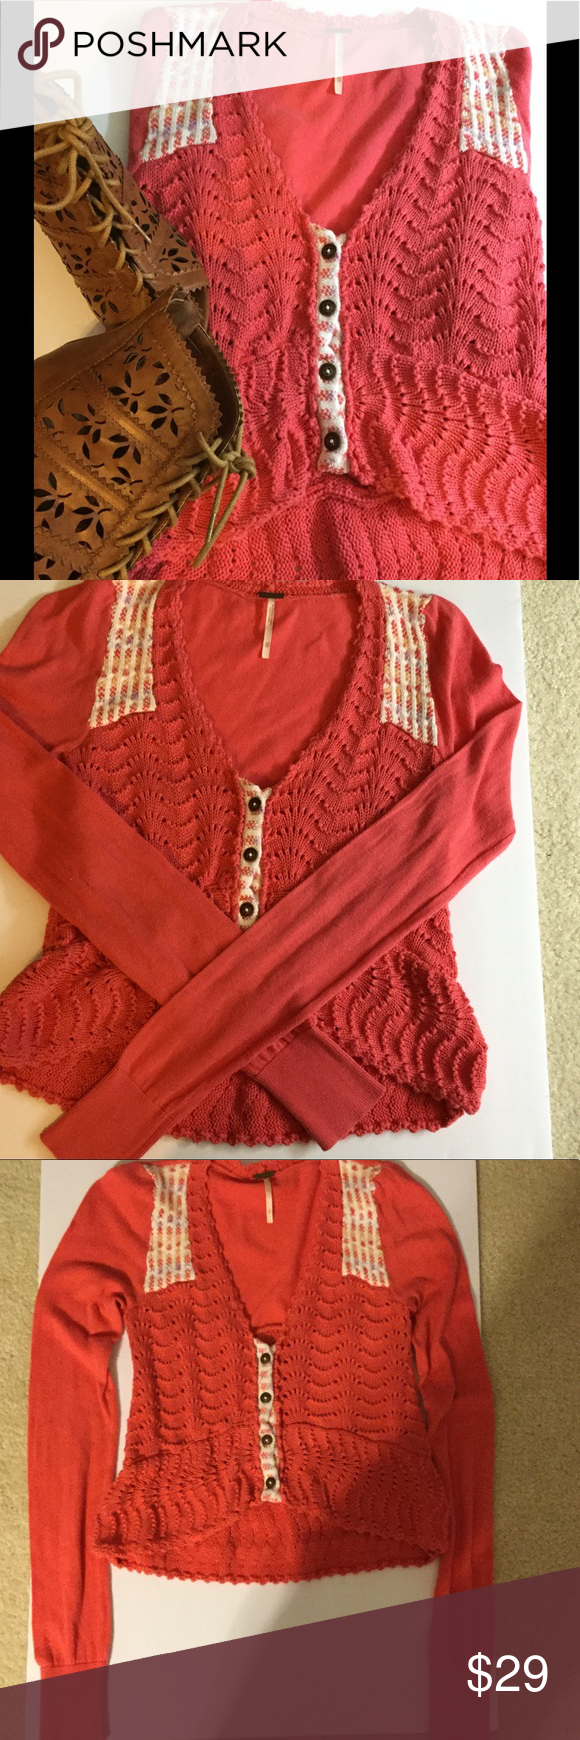 NEW LISTING Free People coral cardigan sweater❤ ❤ | Coral ...